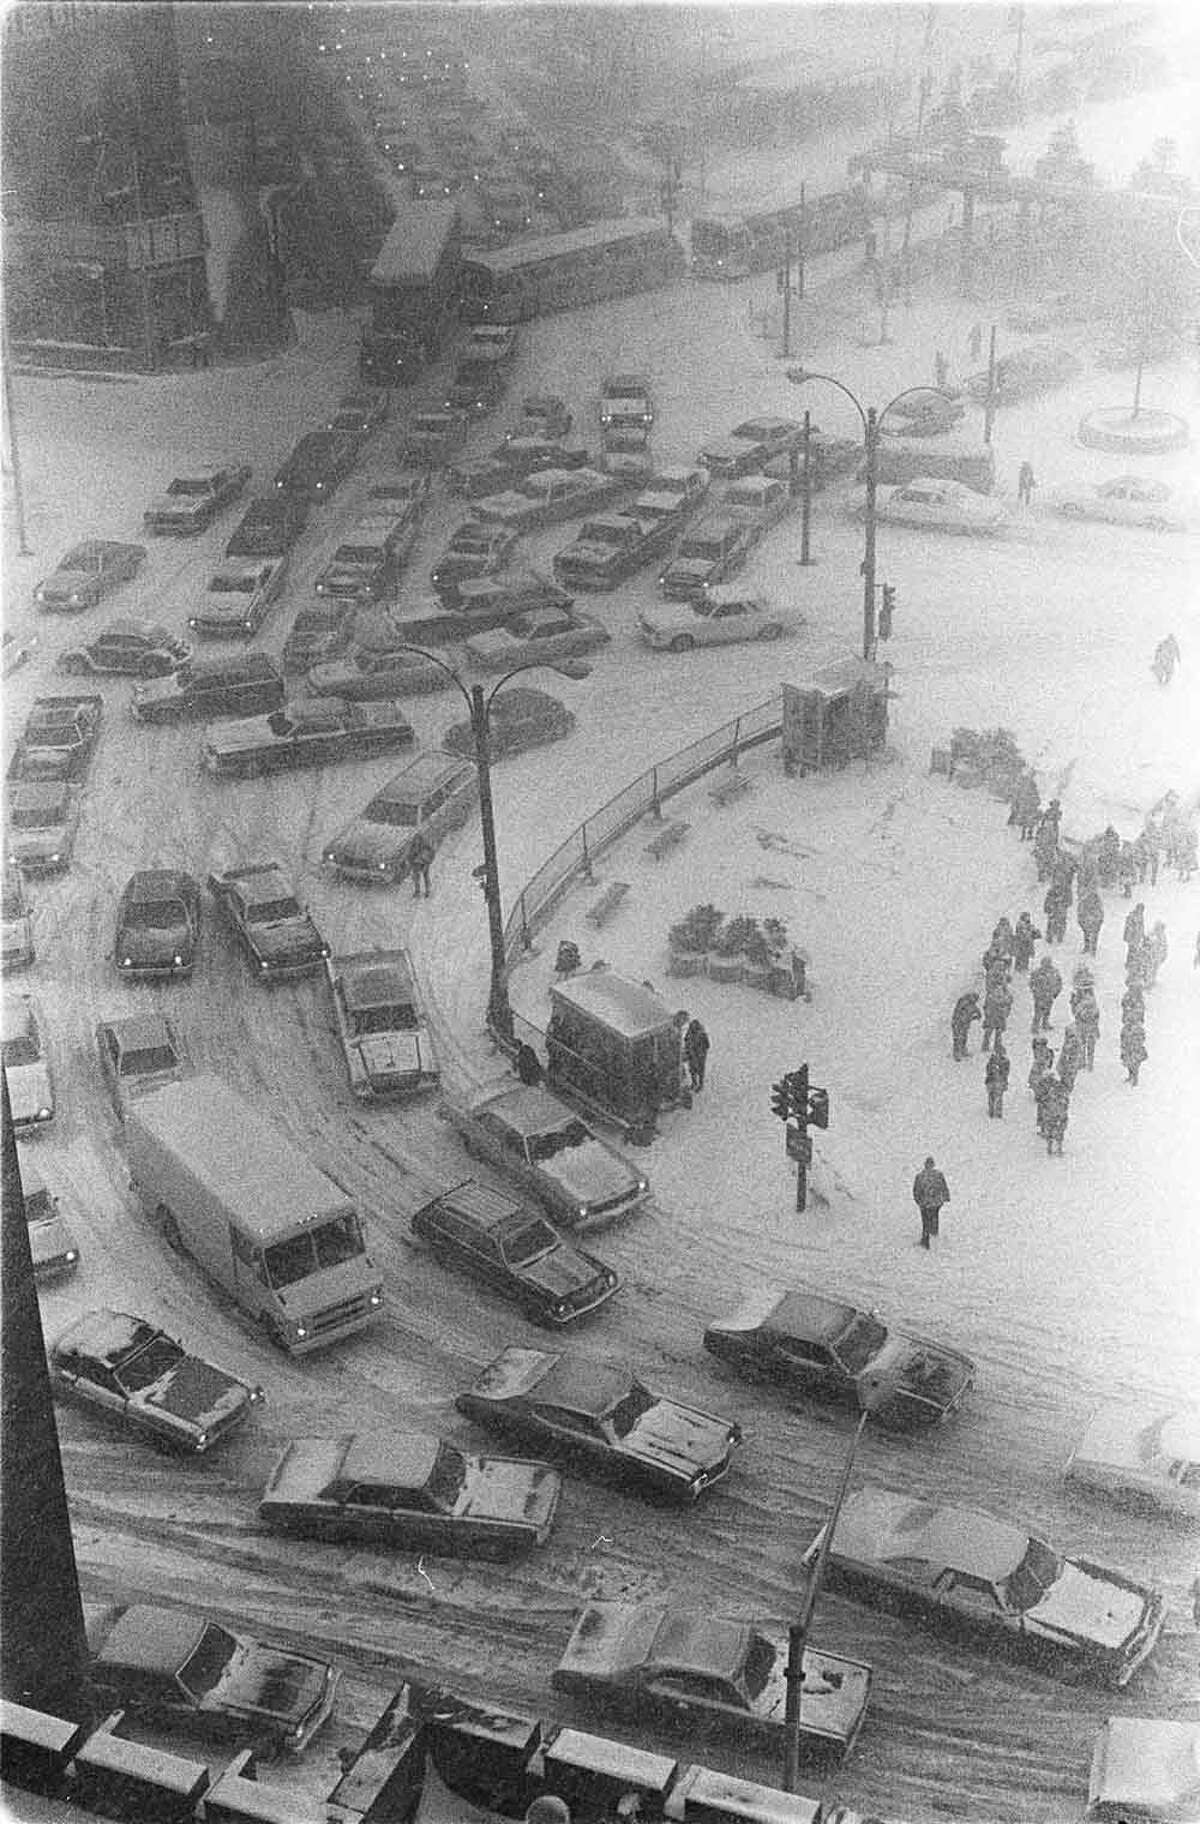 Traffic snarls around Kennedy Plaza in downtown Providence, R.I., on the afternoon of Feb. 6, 1978, the first day of the 1978 blizzard. The 24-hour storm that pounded the Northeast, crippled Rhode Island for more than a week, cutting off power, closing the airport and straining state resources. (AP Photo/The Providence Journal, Richard Benjamin)